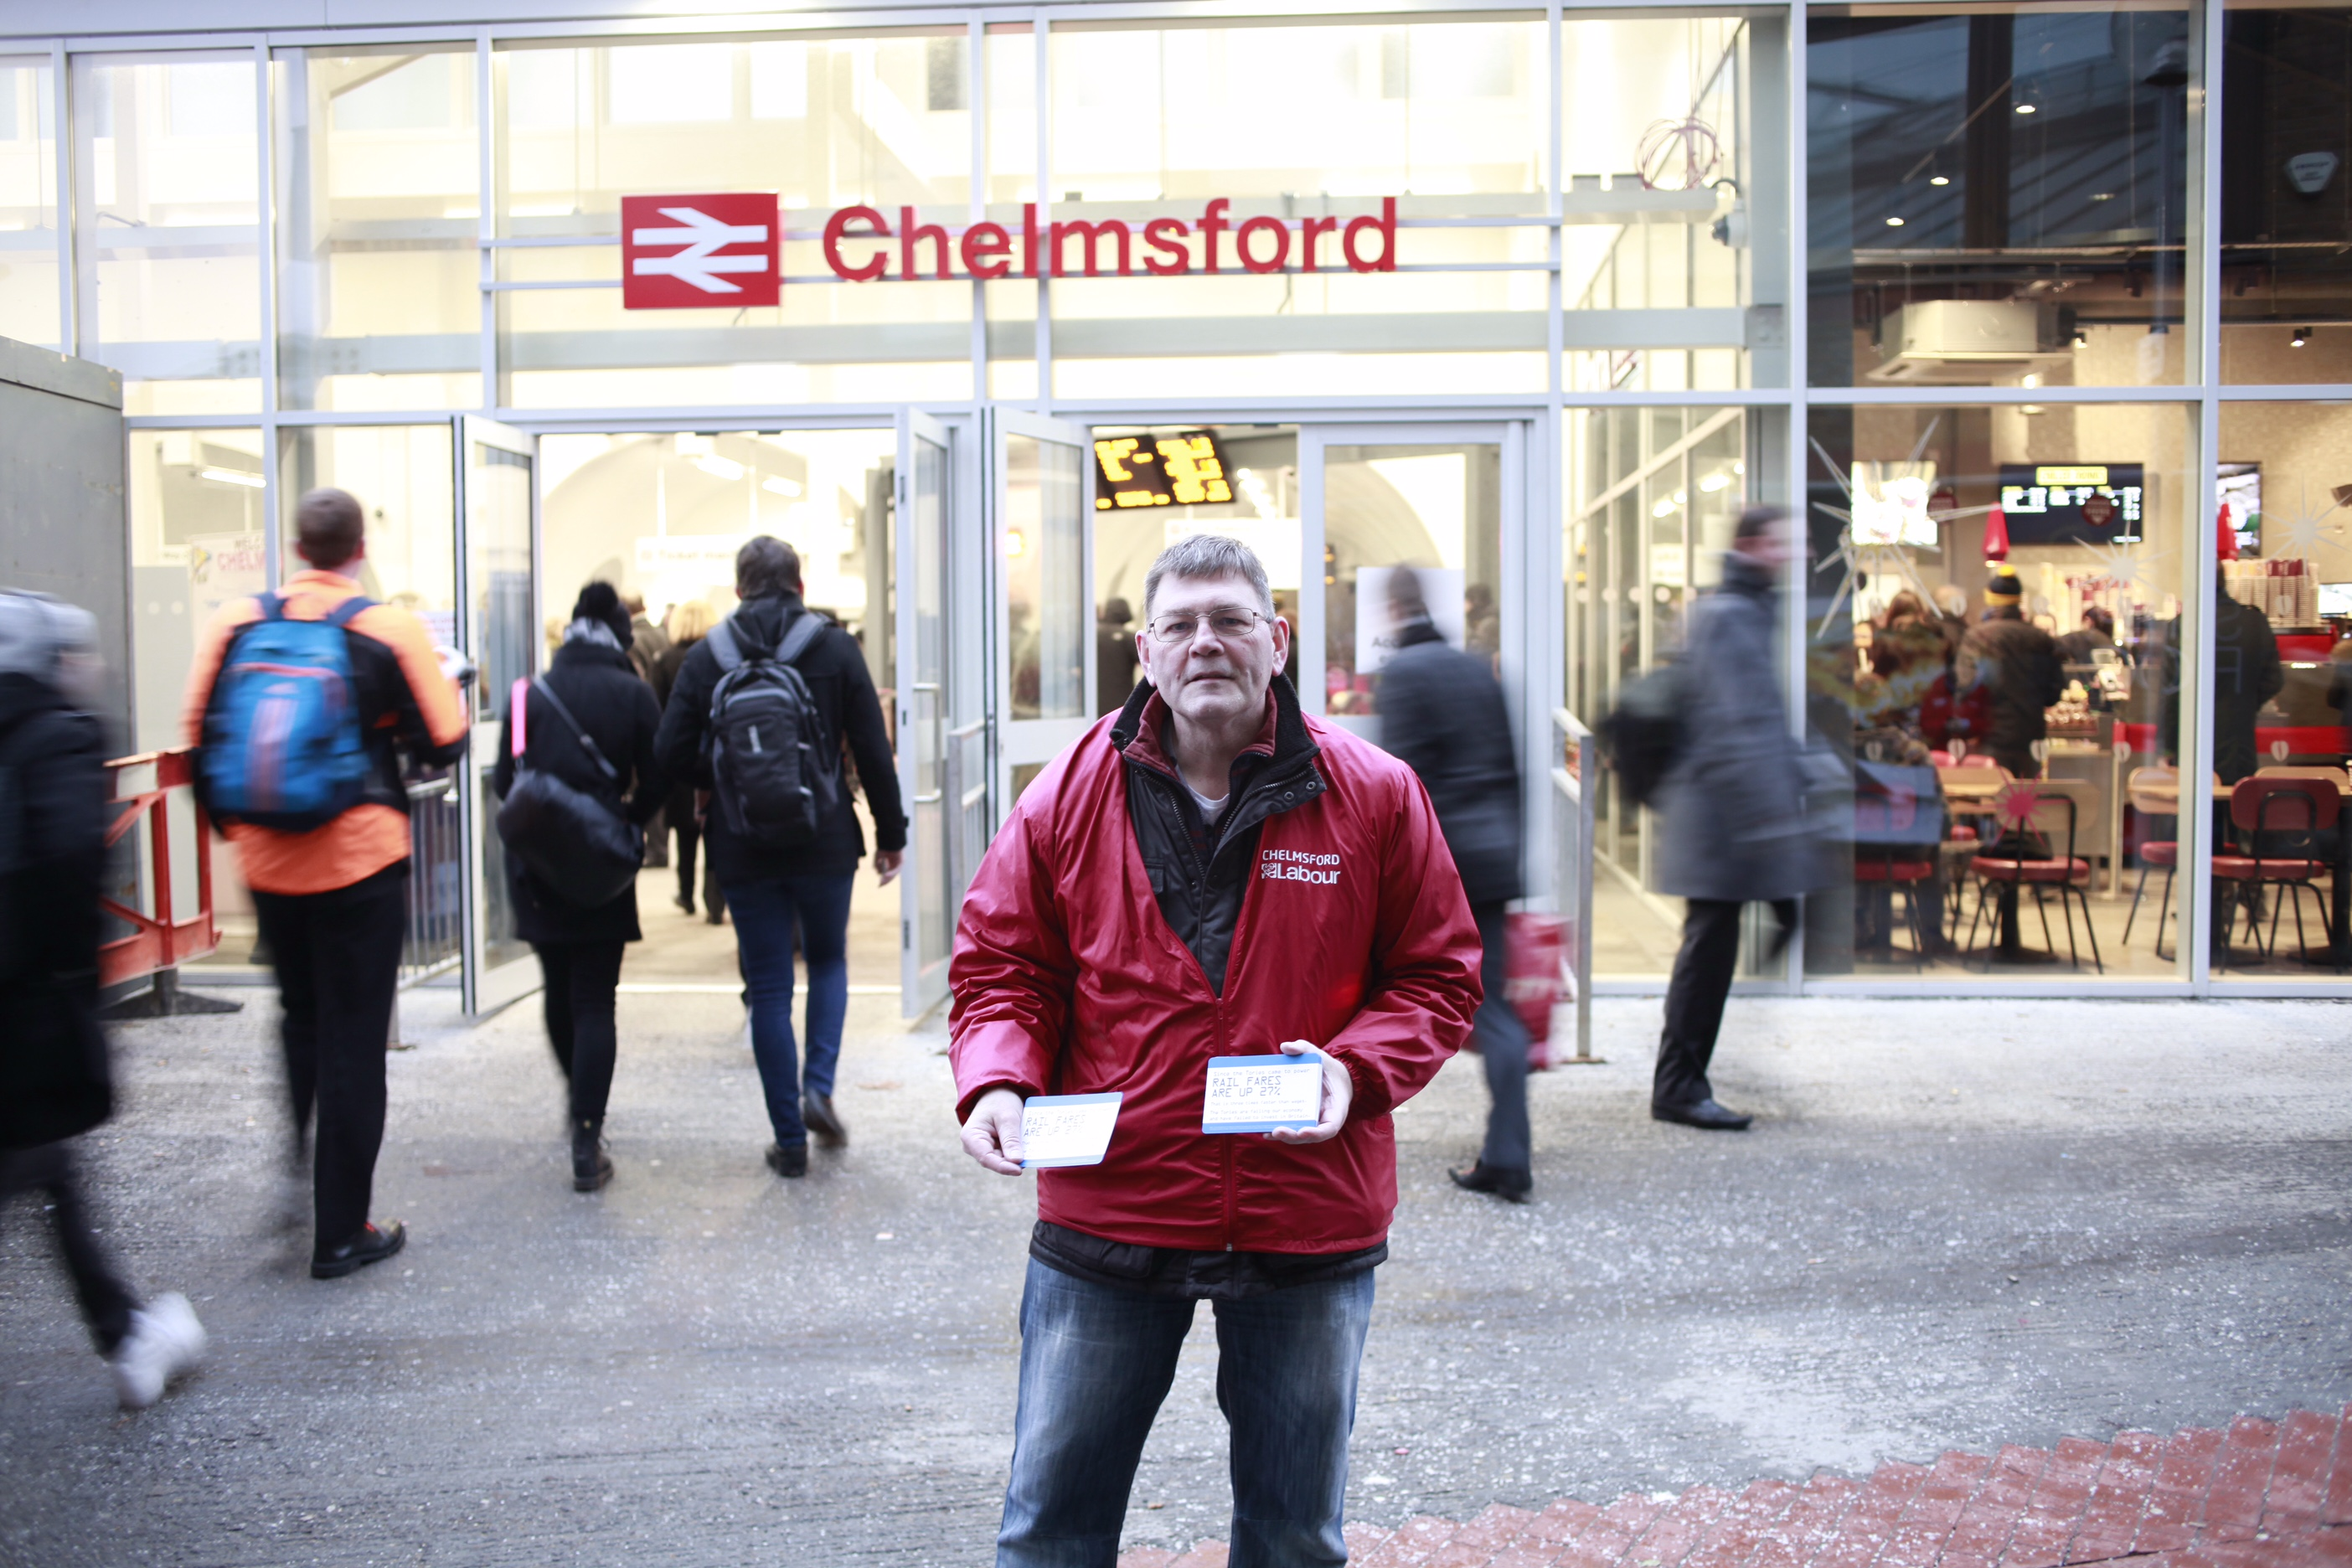 Chelmsford_Rail_Fail_Richard_giving_out_leaflet.JPG